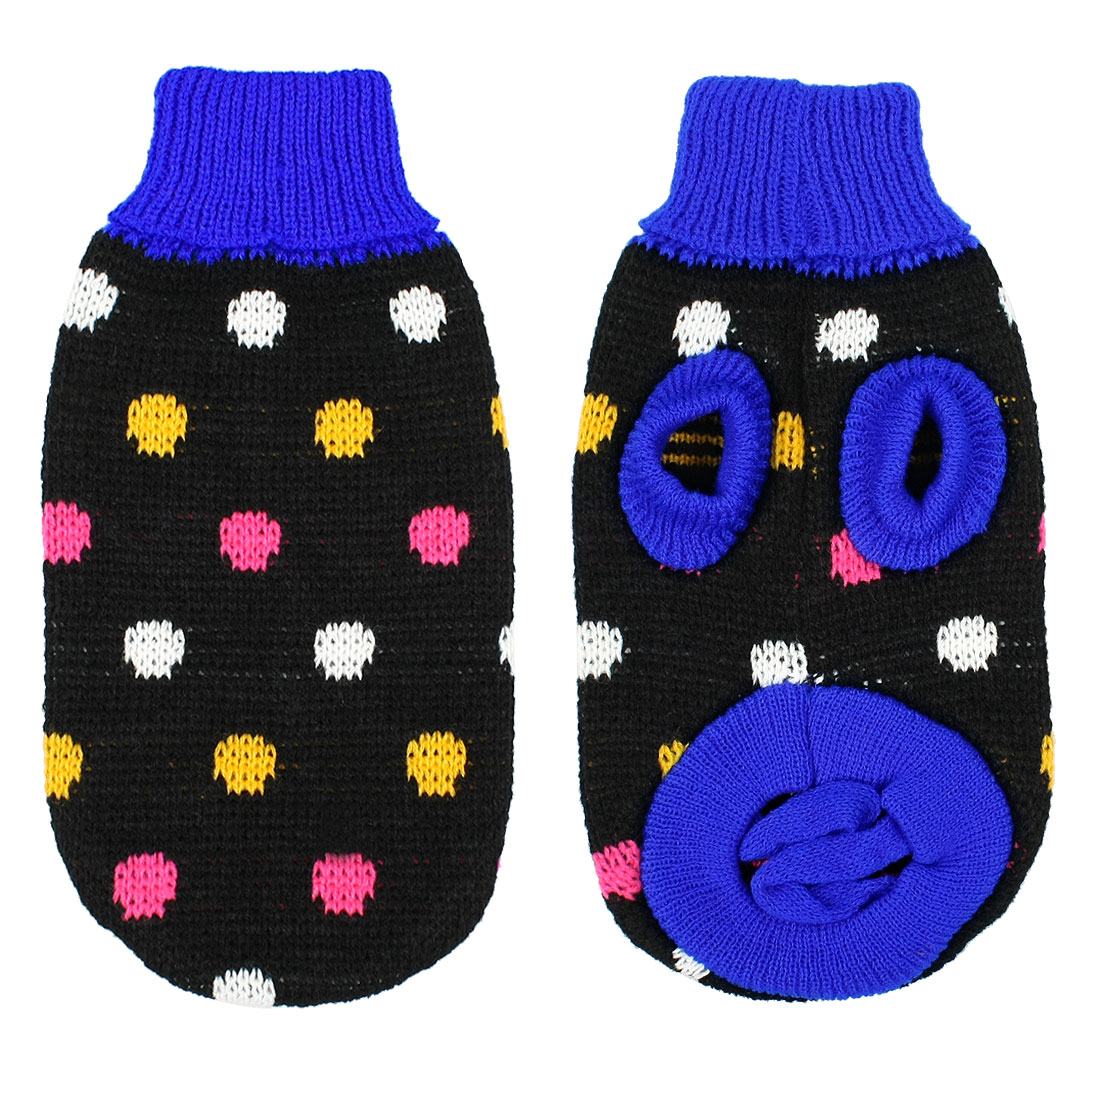 Unique Bargains Unique Bargains Pet Dog Clothes Chihuahua Dotted Winter Knitted Coat Sweater Apparel Black XS